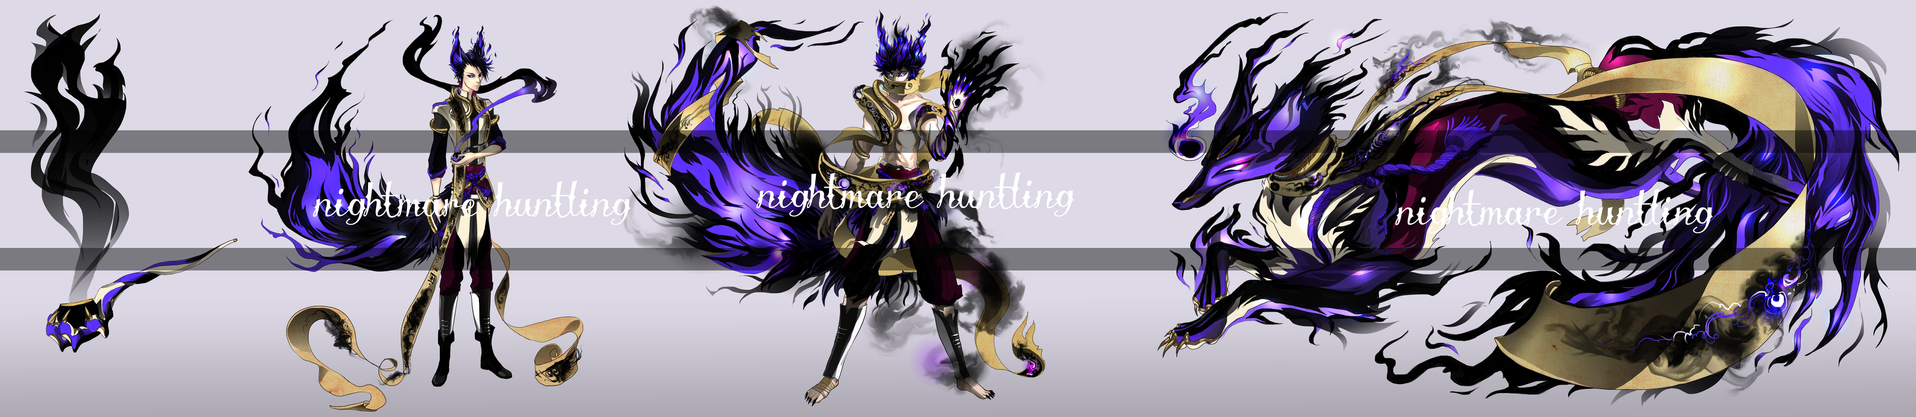 NIGHTMARE HUNTLING adopt [CUSTOM] by ensoul